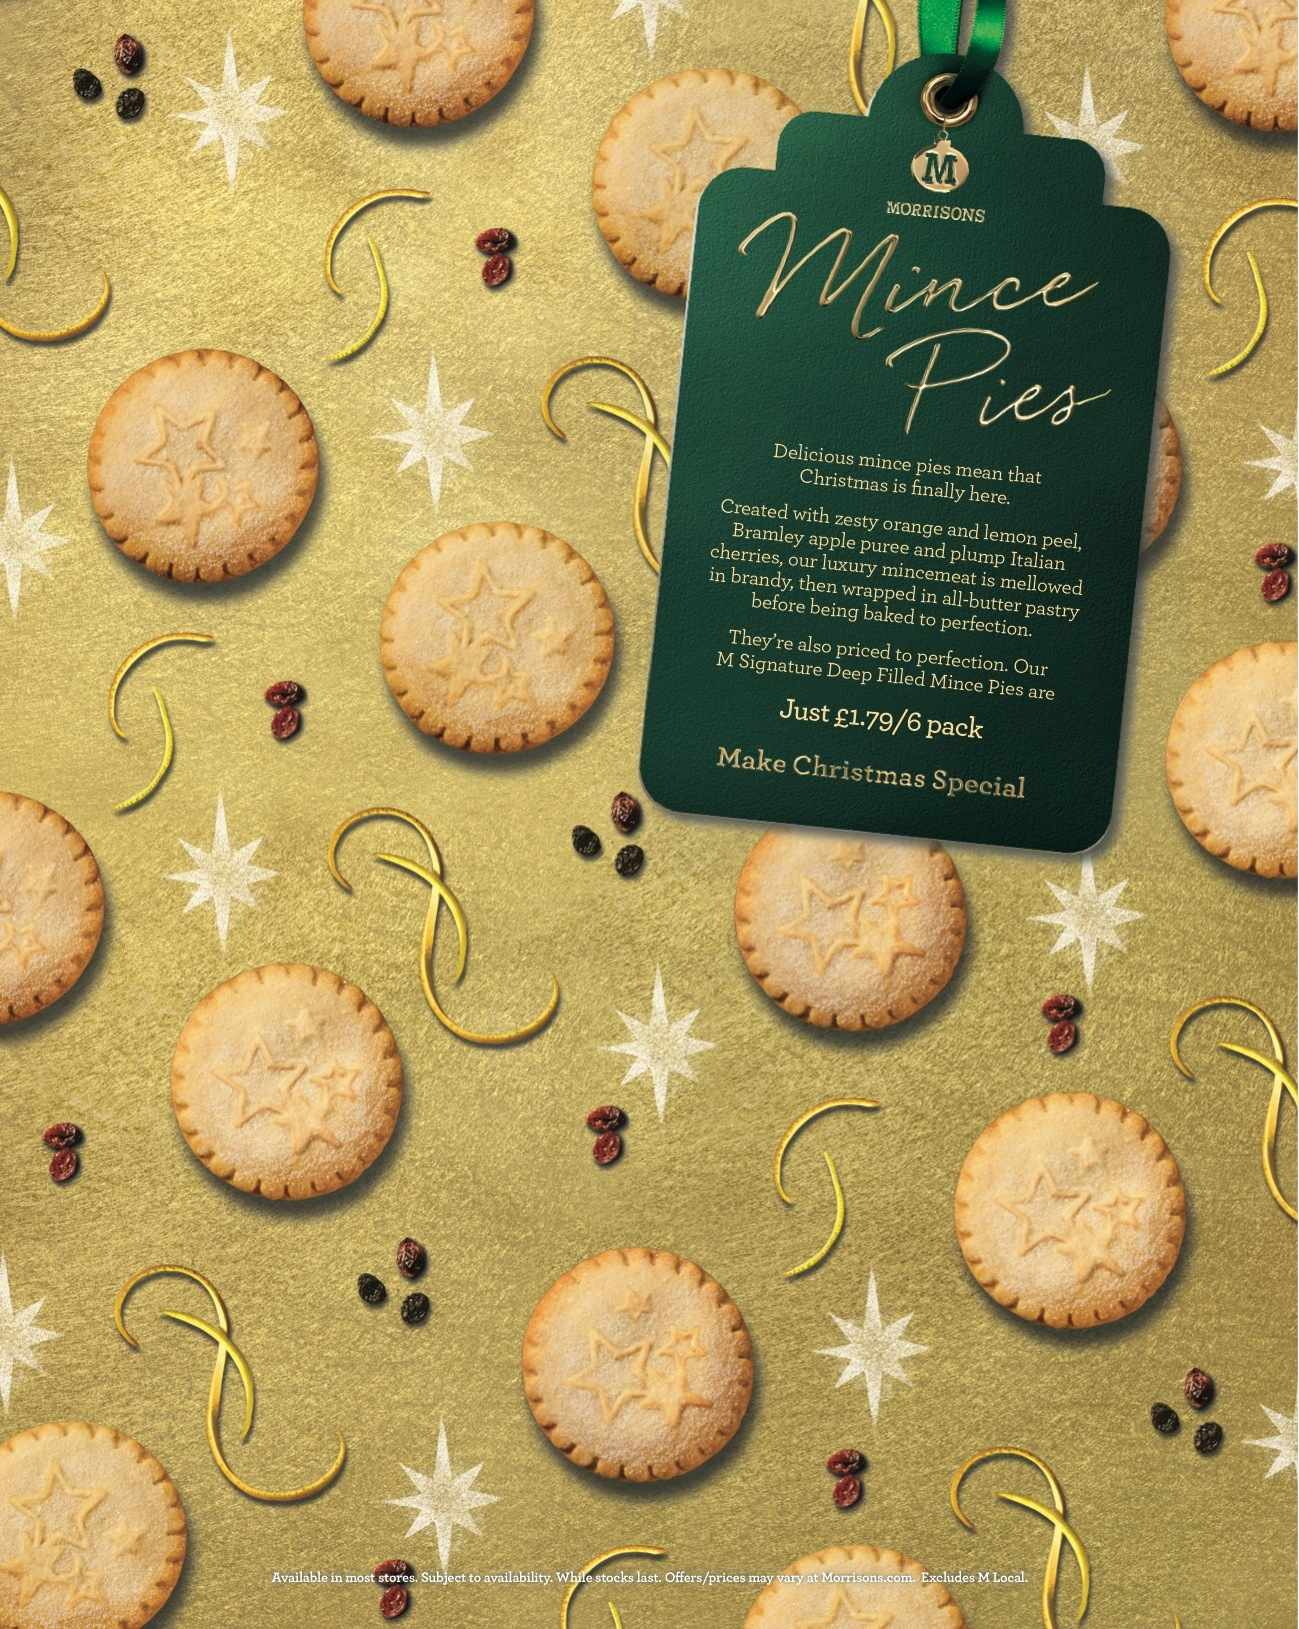 morrisons_wrapping_mincepies_aotw_aotw